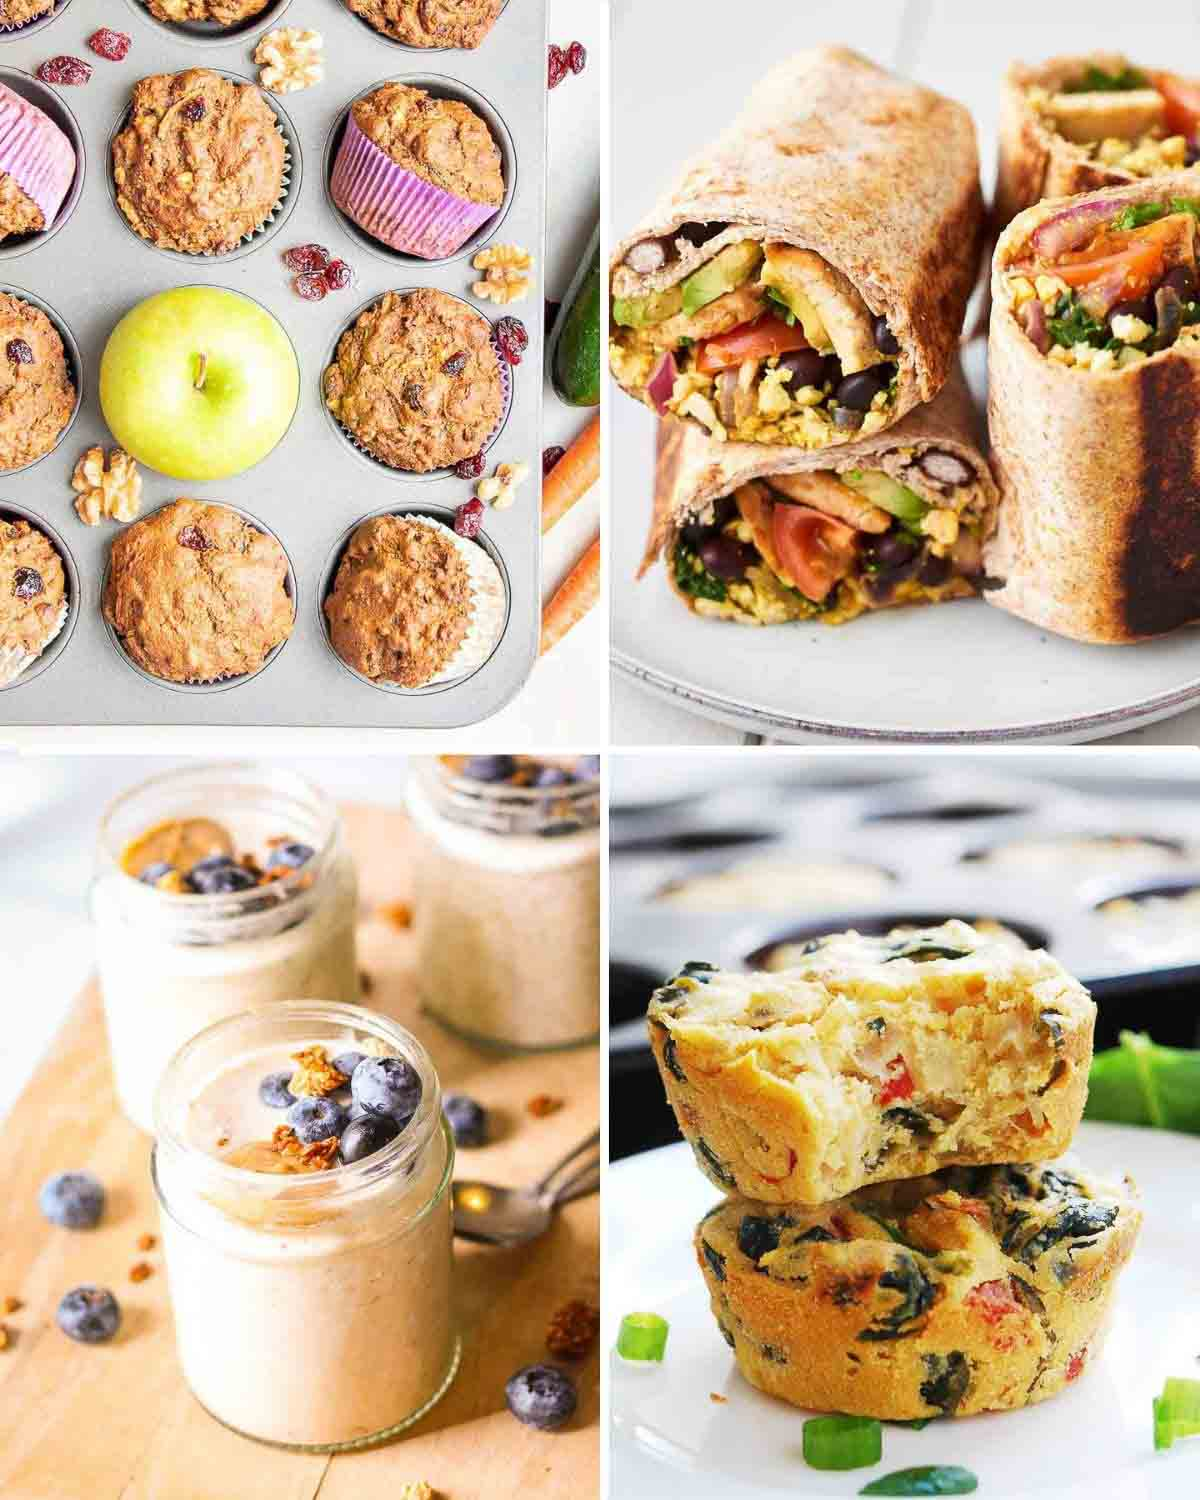 Collage of muffin in tray, burritos in plate, 3 jar of overnight oats and 2 frittata on plate.